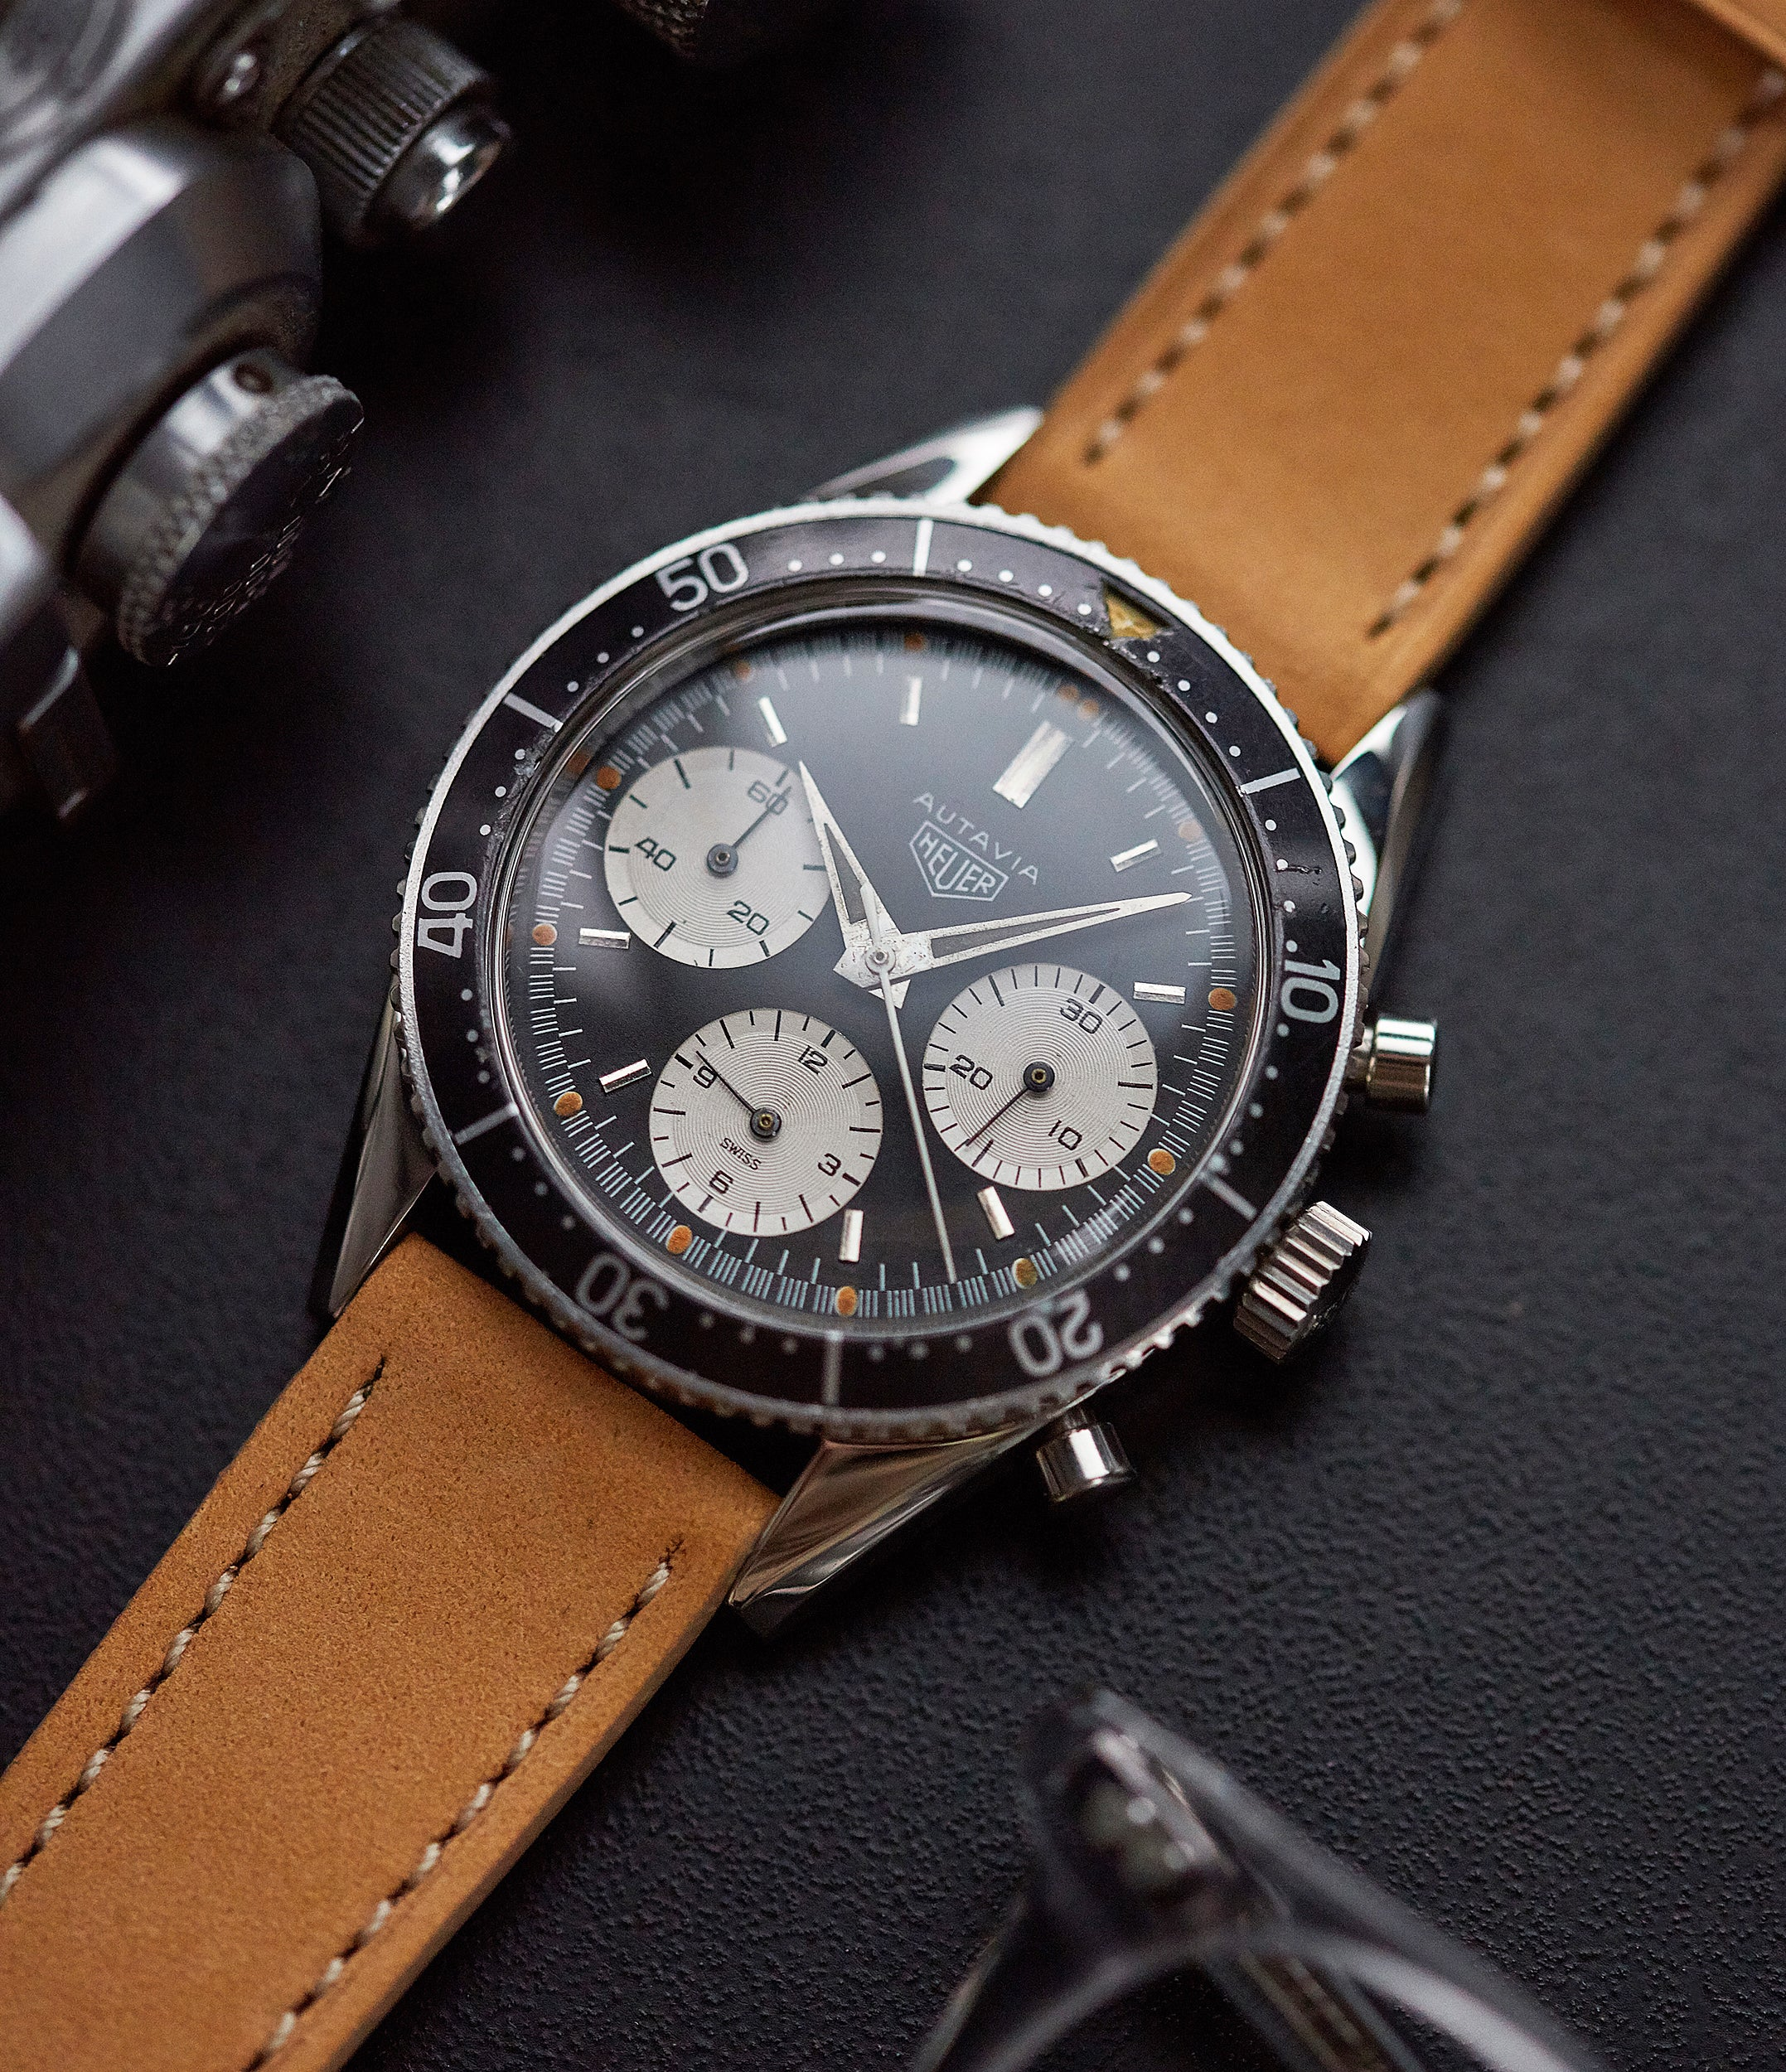 original unrestored Heuer Autavia 2446 Second Execution Valjoux 72 rare first-owner steel racing sport watch for sale online at A Collected Man London UK rare watch specilaist